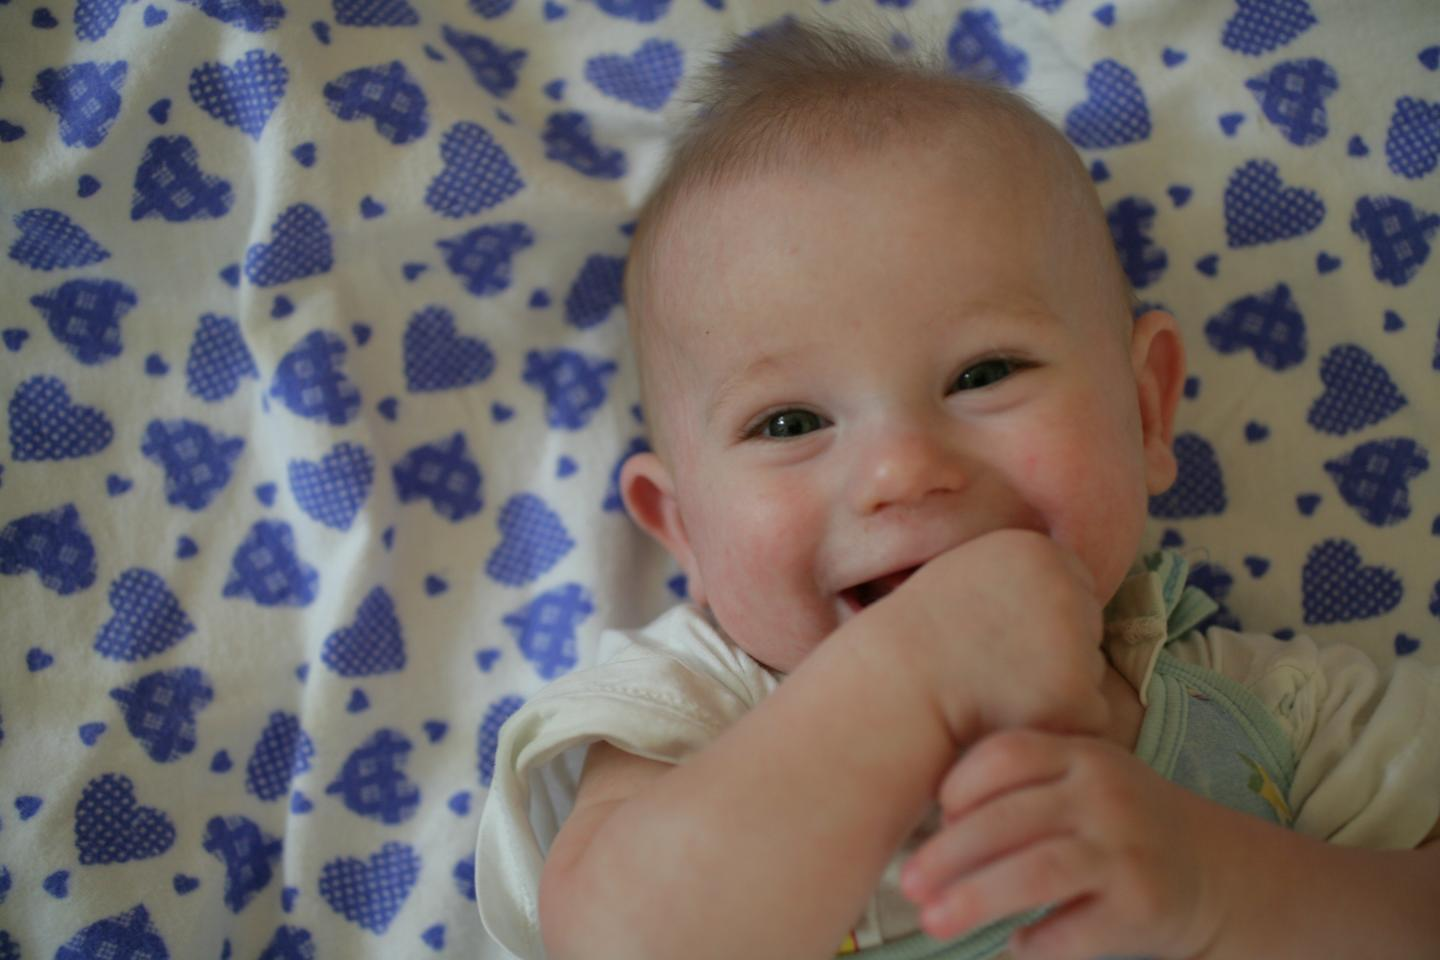 a few months old baby is smiling with hands in his or her mouth